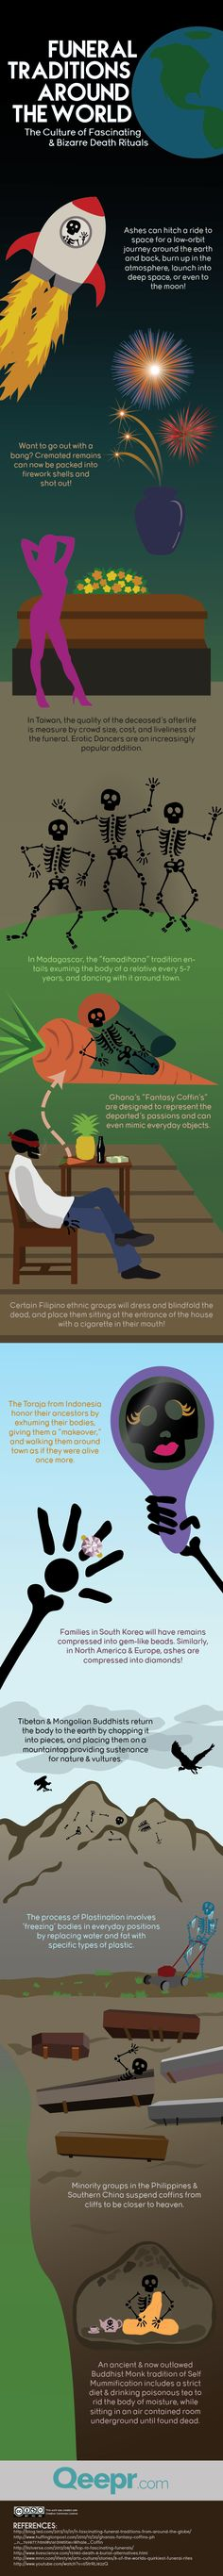 Funeral Traditions from Around the Globe (Infographic made by Qeepr)